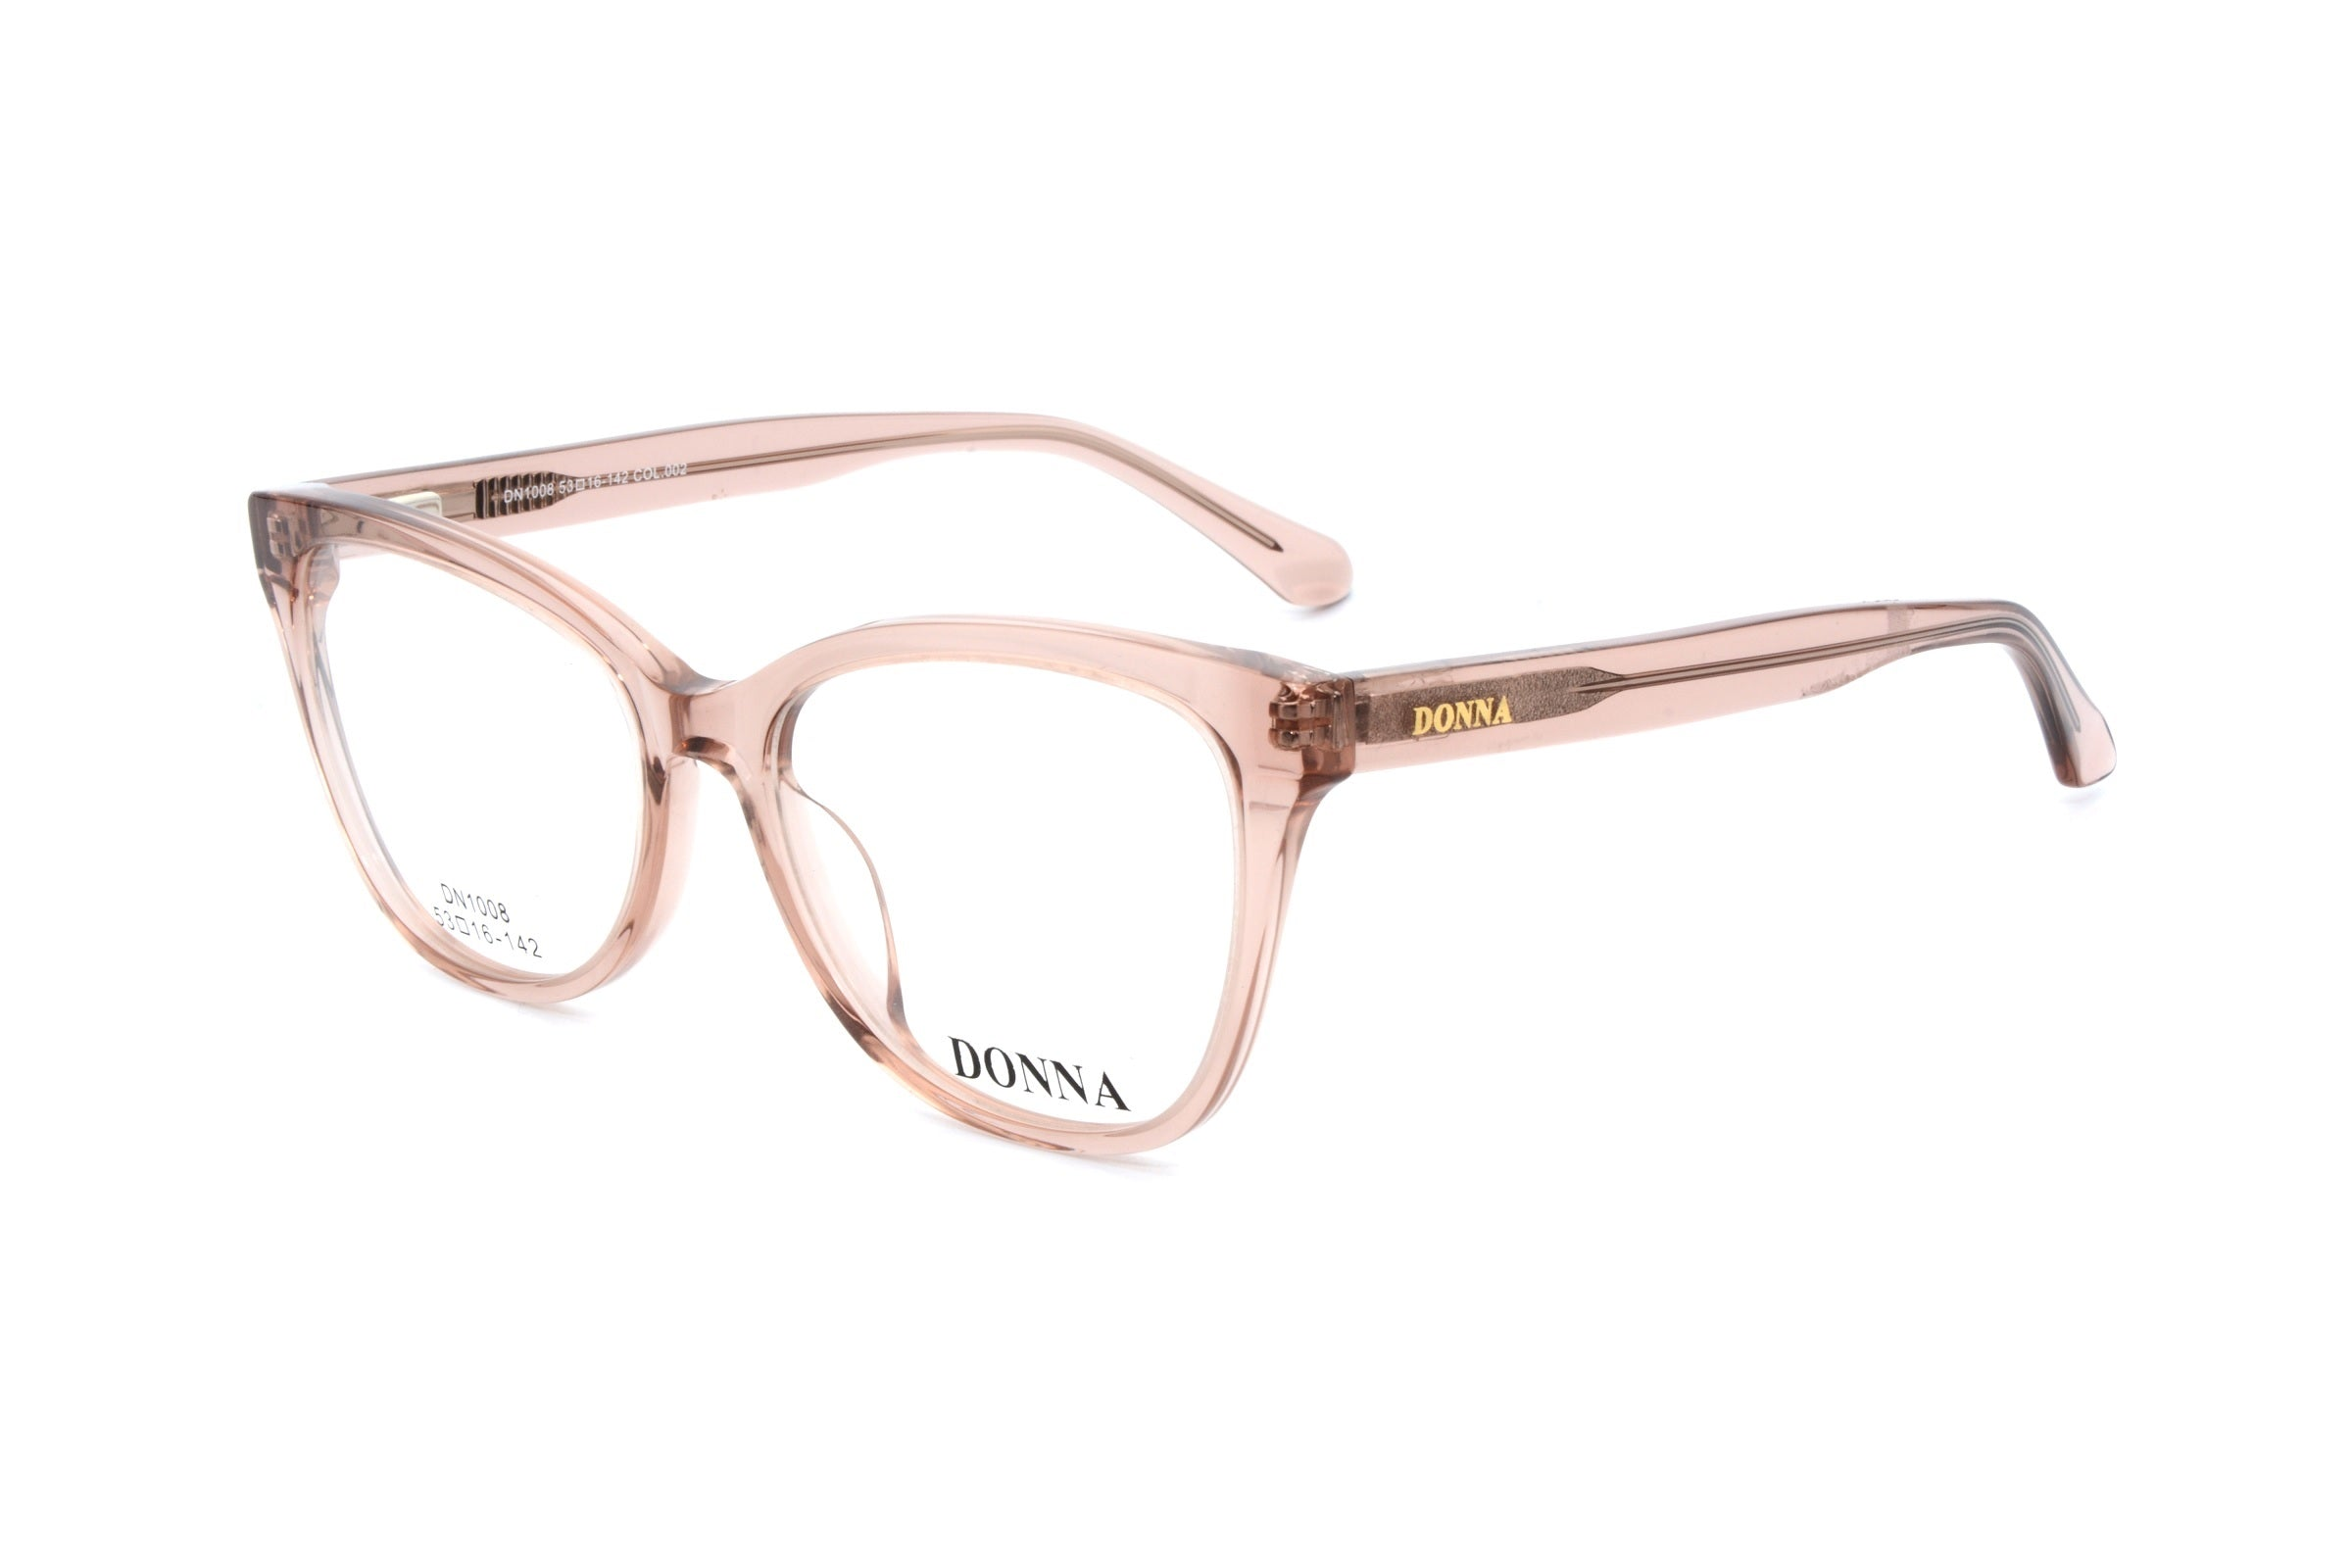 Donna eyewear 1008, C002 - Optics Trading